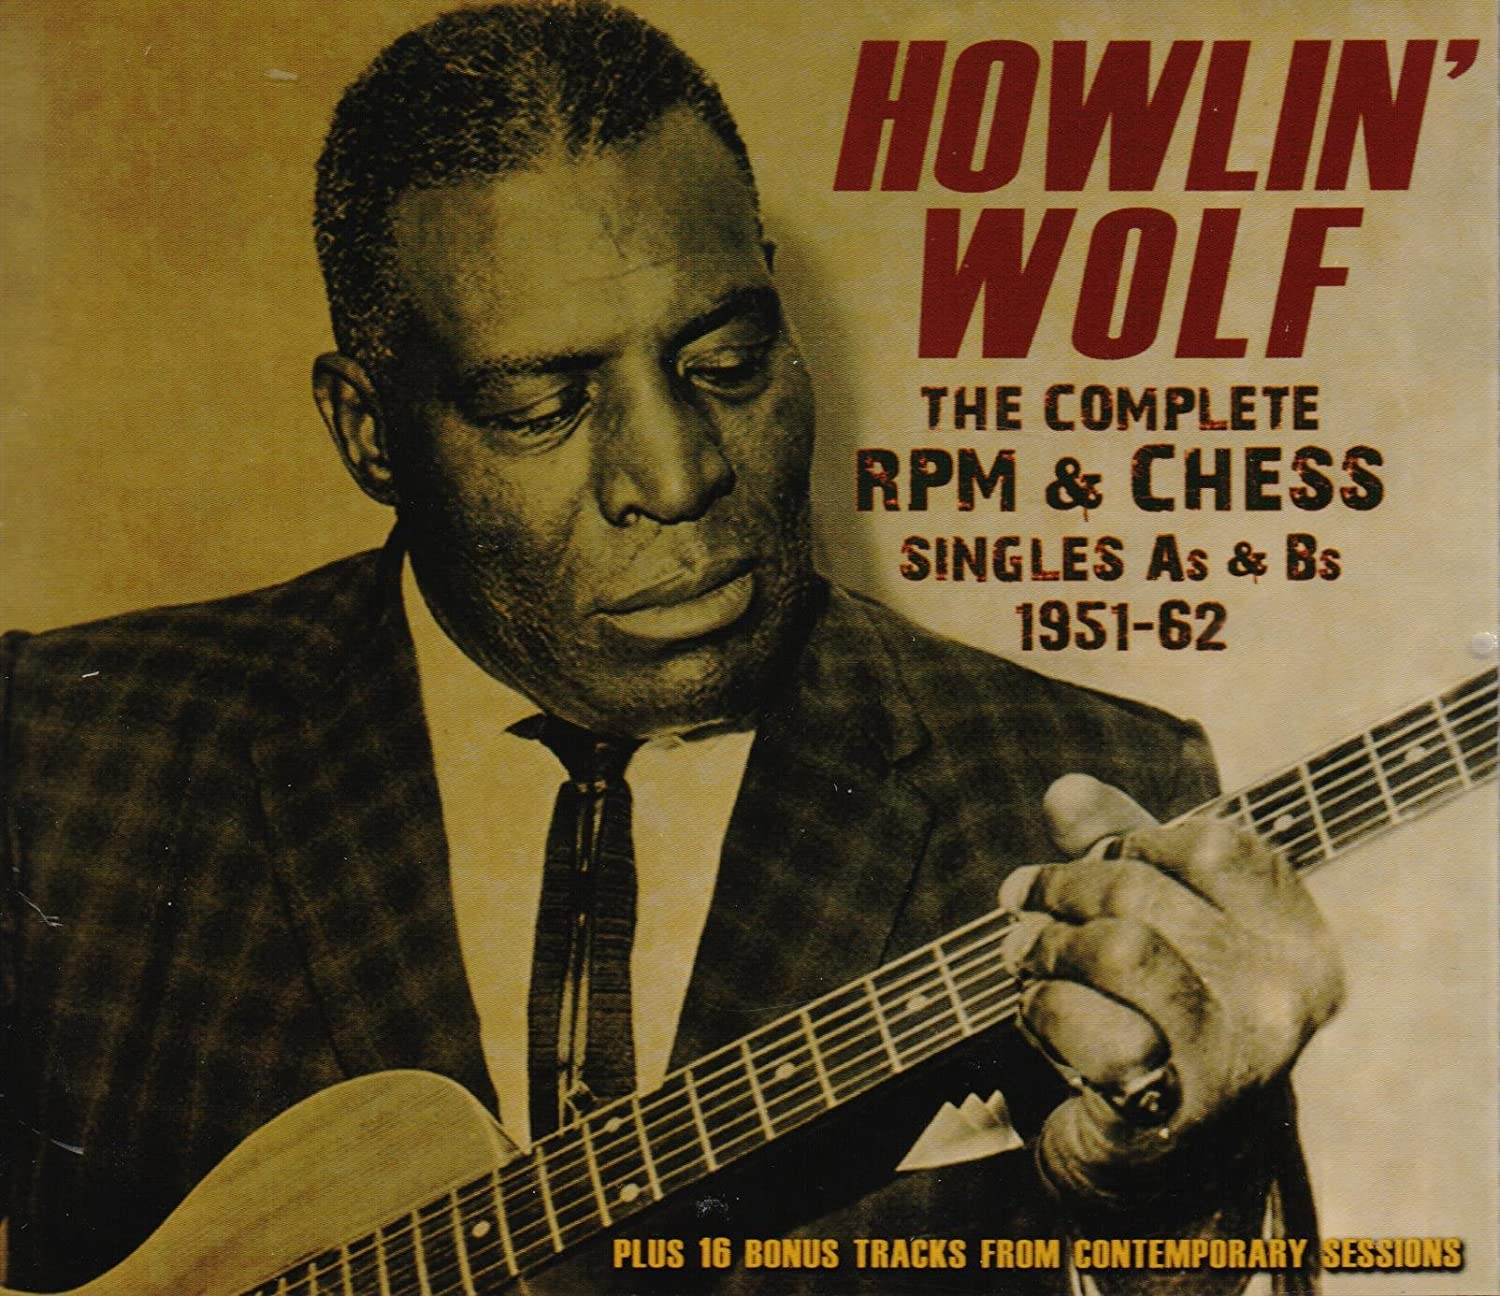 Amazon | Howlin' Wolf: The Complete RPM & Chess Singles As & Bs 1951-62 | Howlin' Wolf | 輸入盤 | 音楽